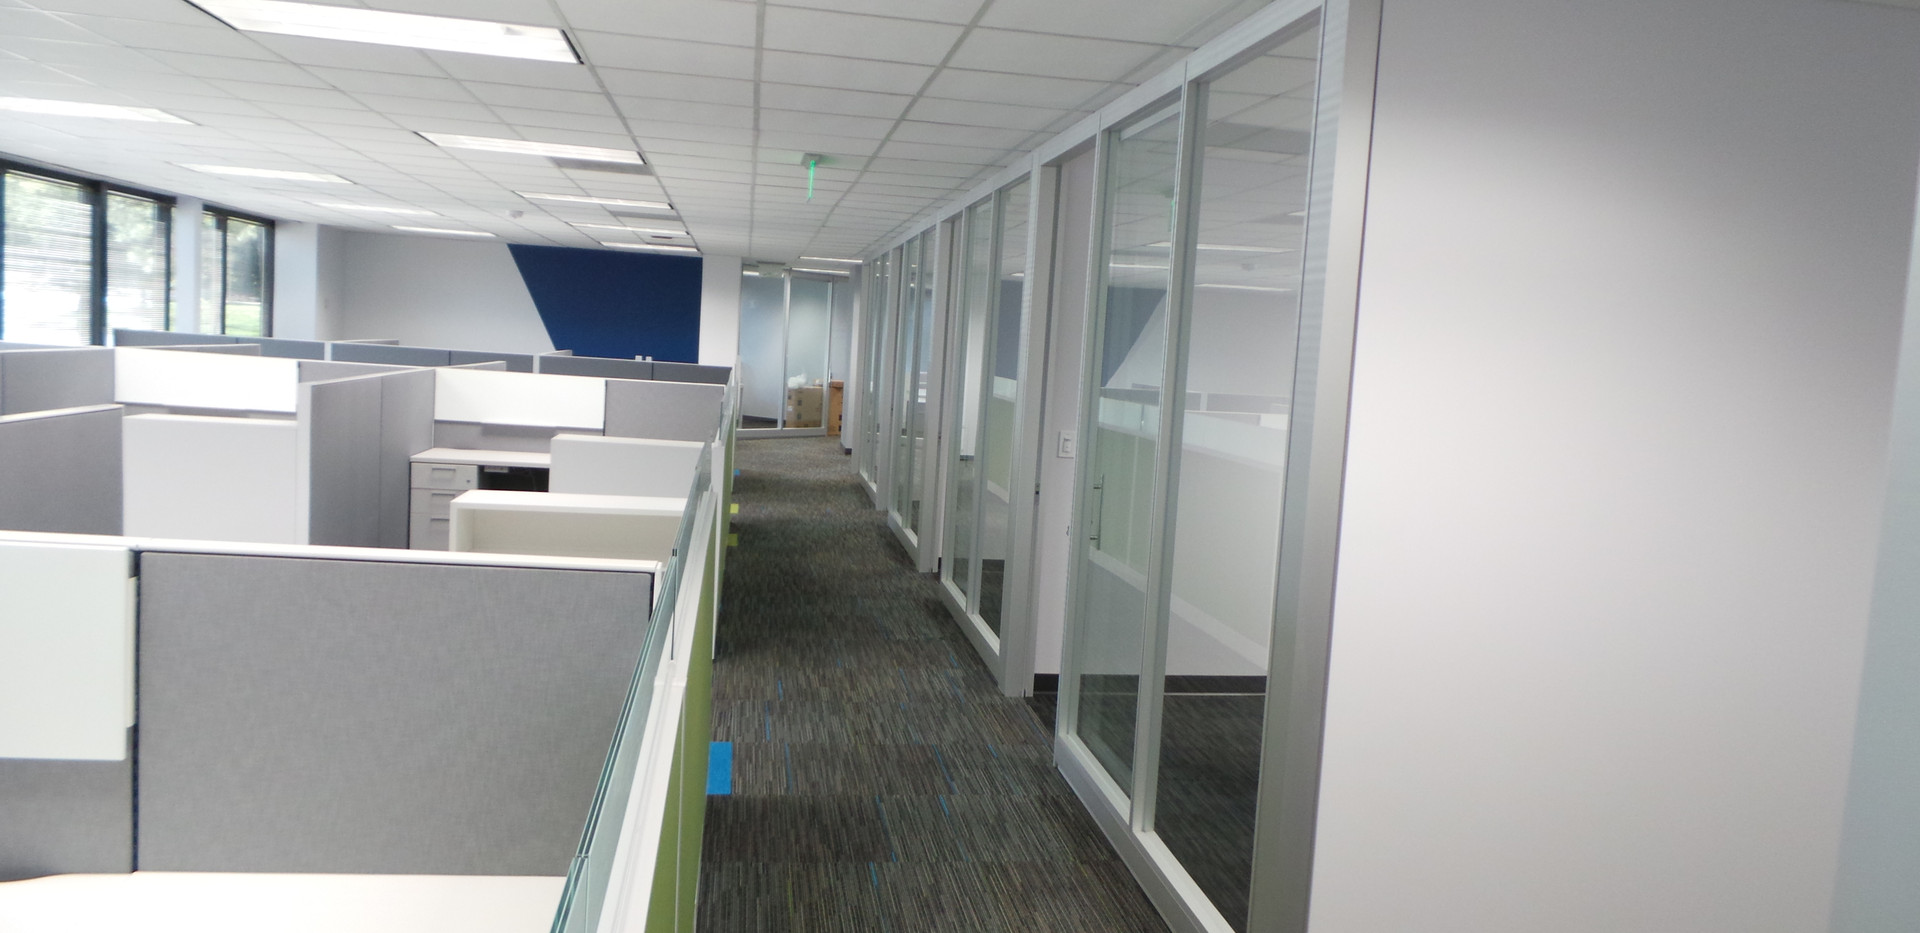 Hallway View of Desks and Offices - Buildout Pros